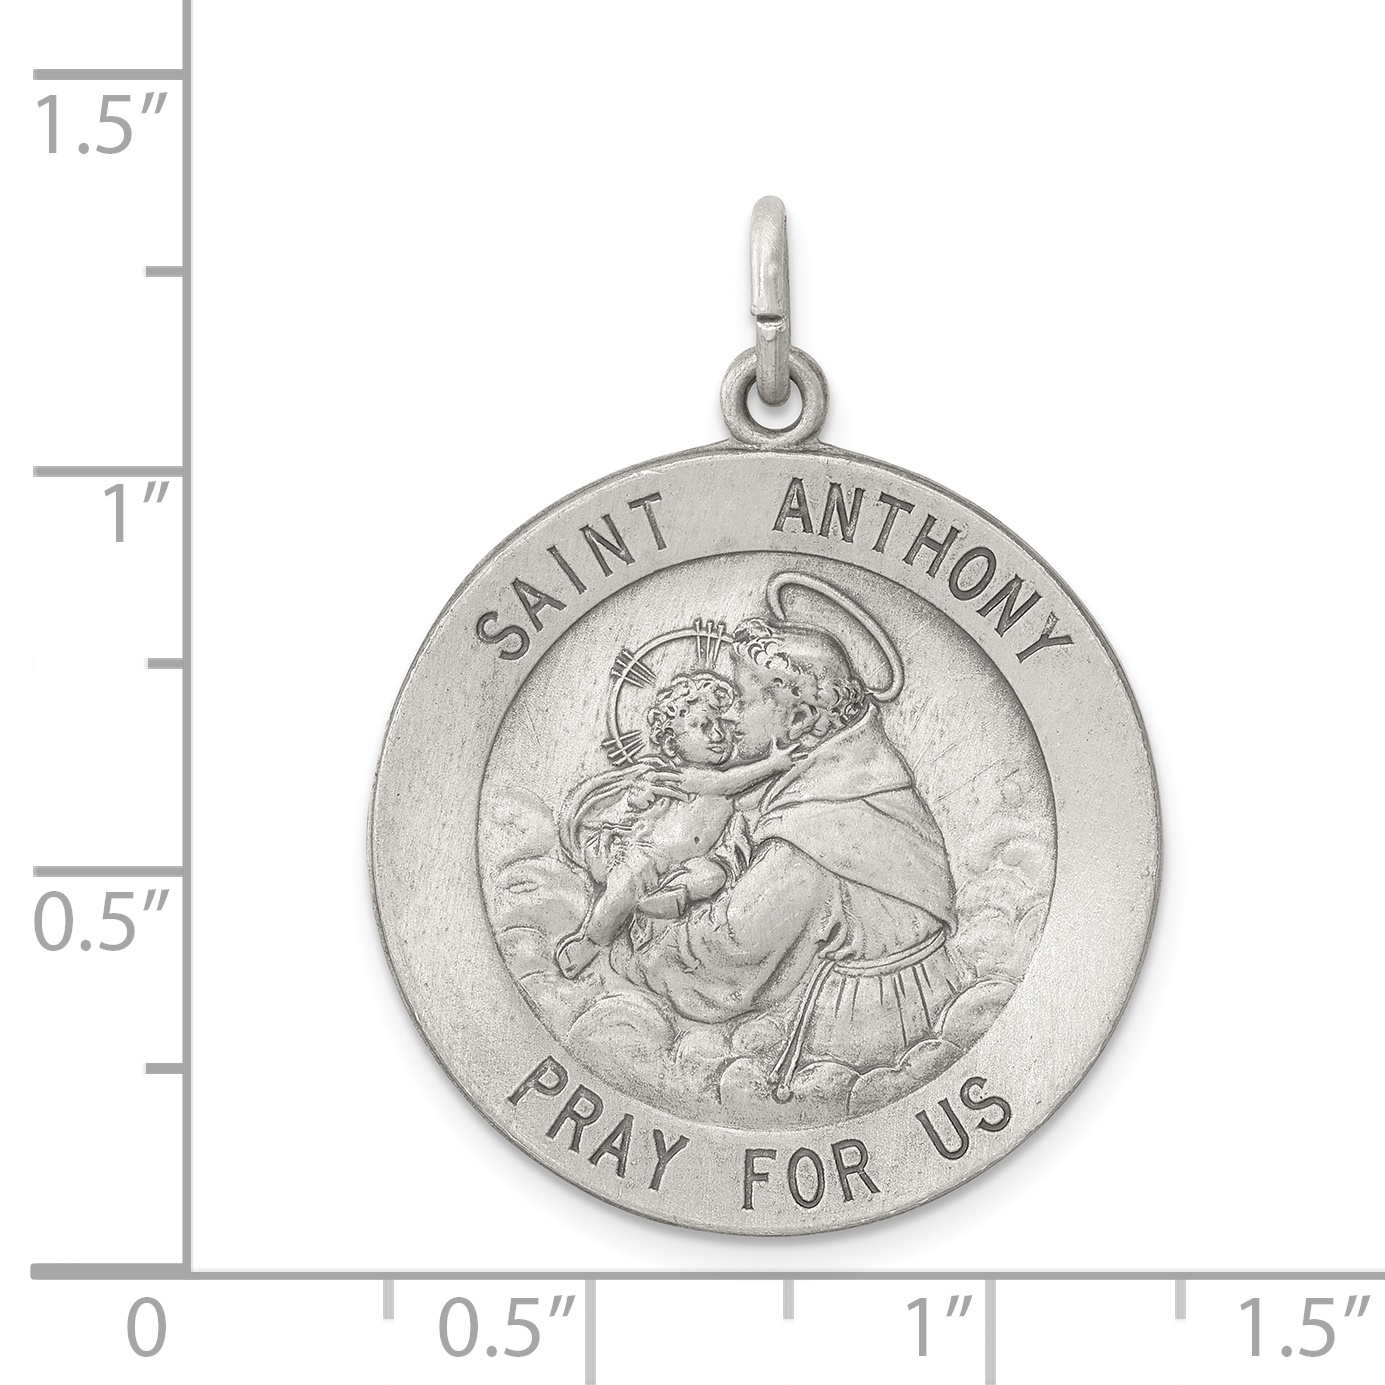 925 Sterling Silver Saint Anthony Medal Pendant Charm Necklace Religious Patron St Fine Jewelry Gifts For Women For Her - image 1 de 2